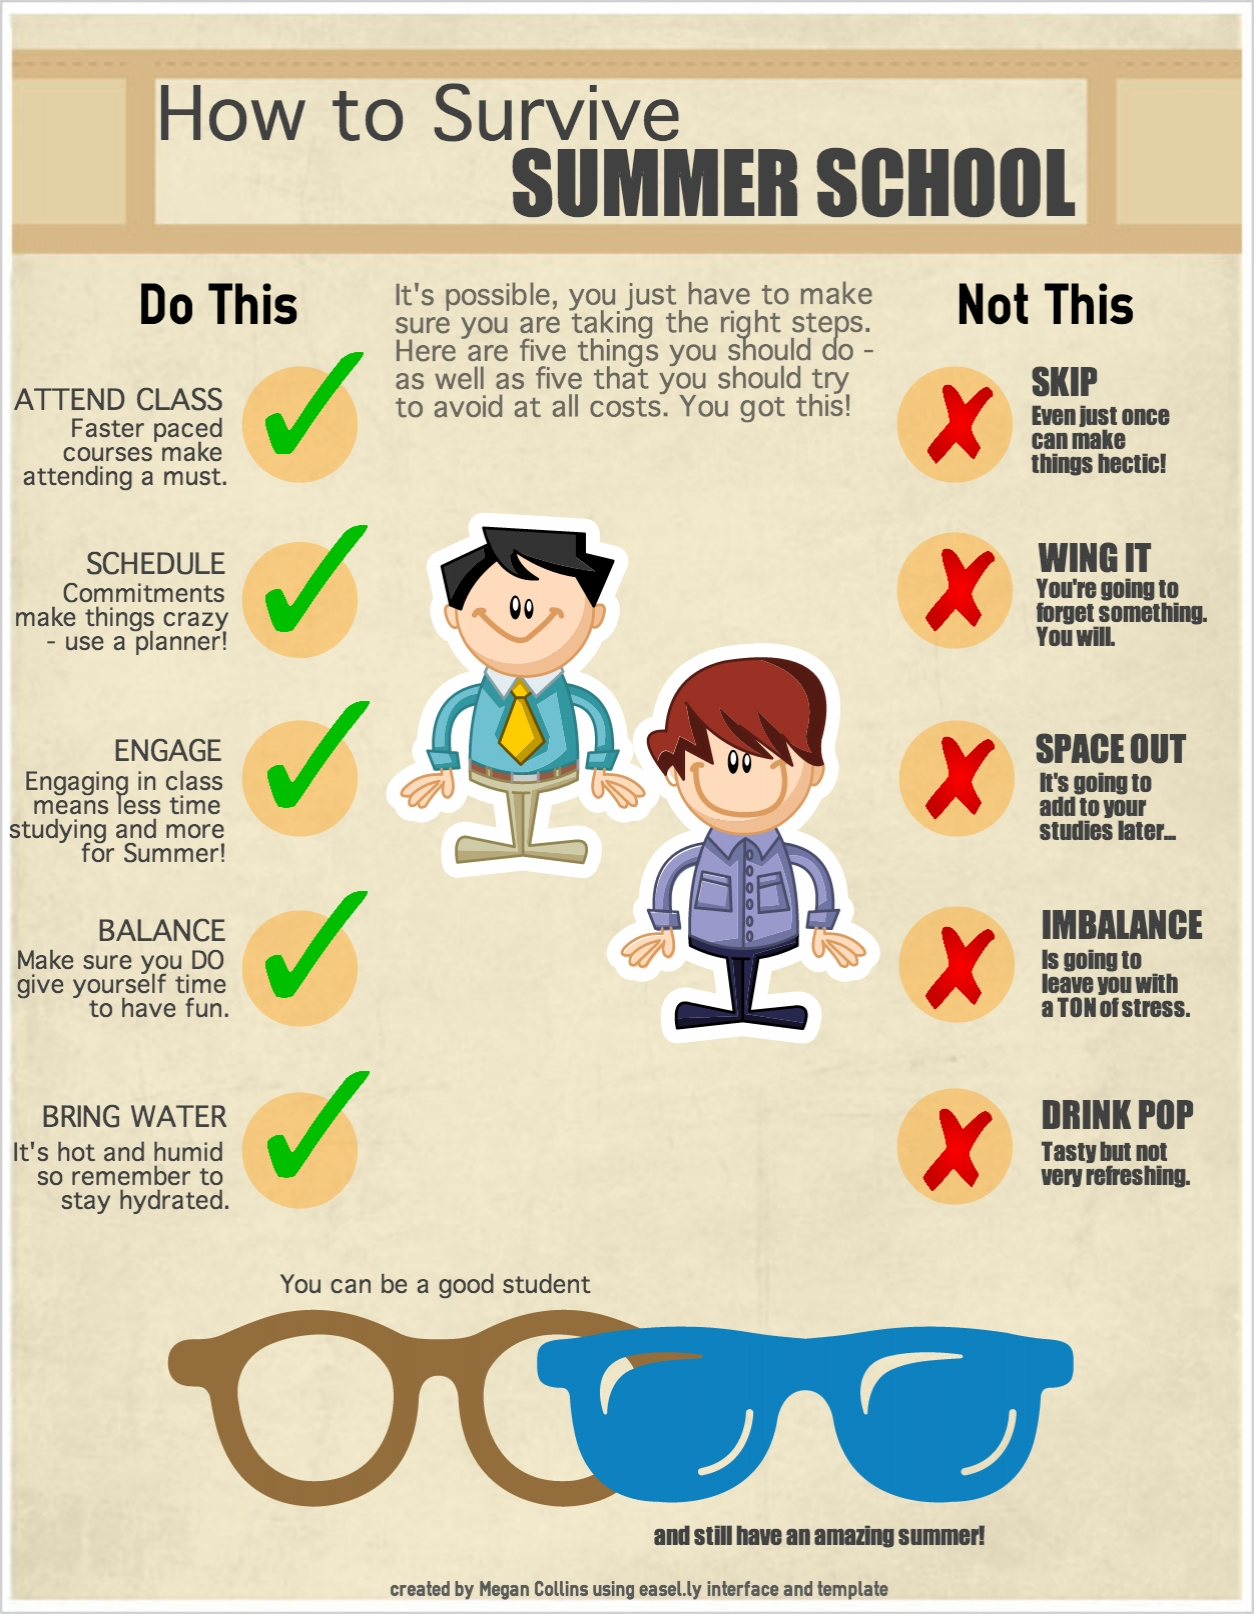 An infographic 'How to Survive Summer School'. Includes tips 'Attend Class', 'Schedule', 'Engage', 'Balance', & 'Bring Water'